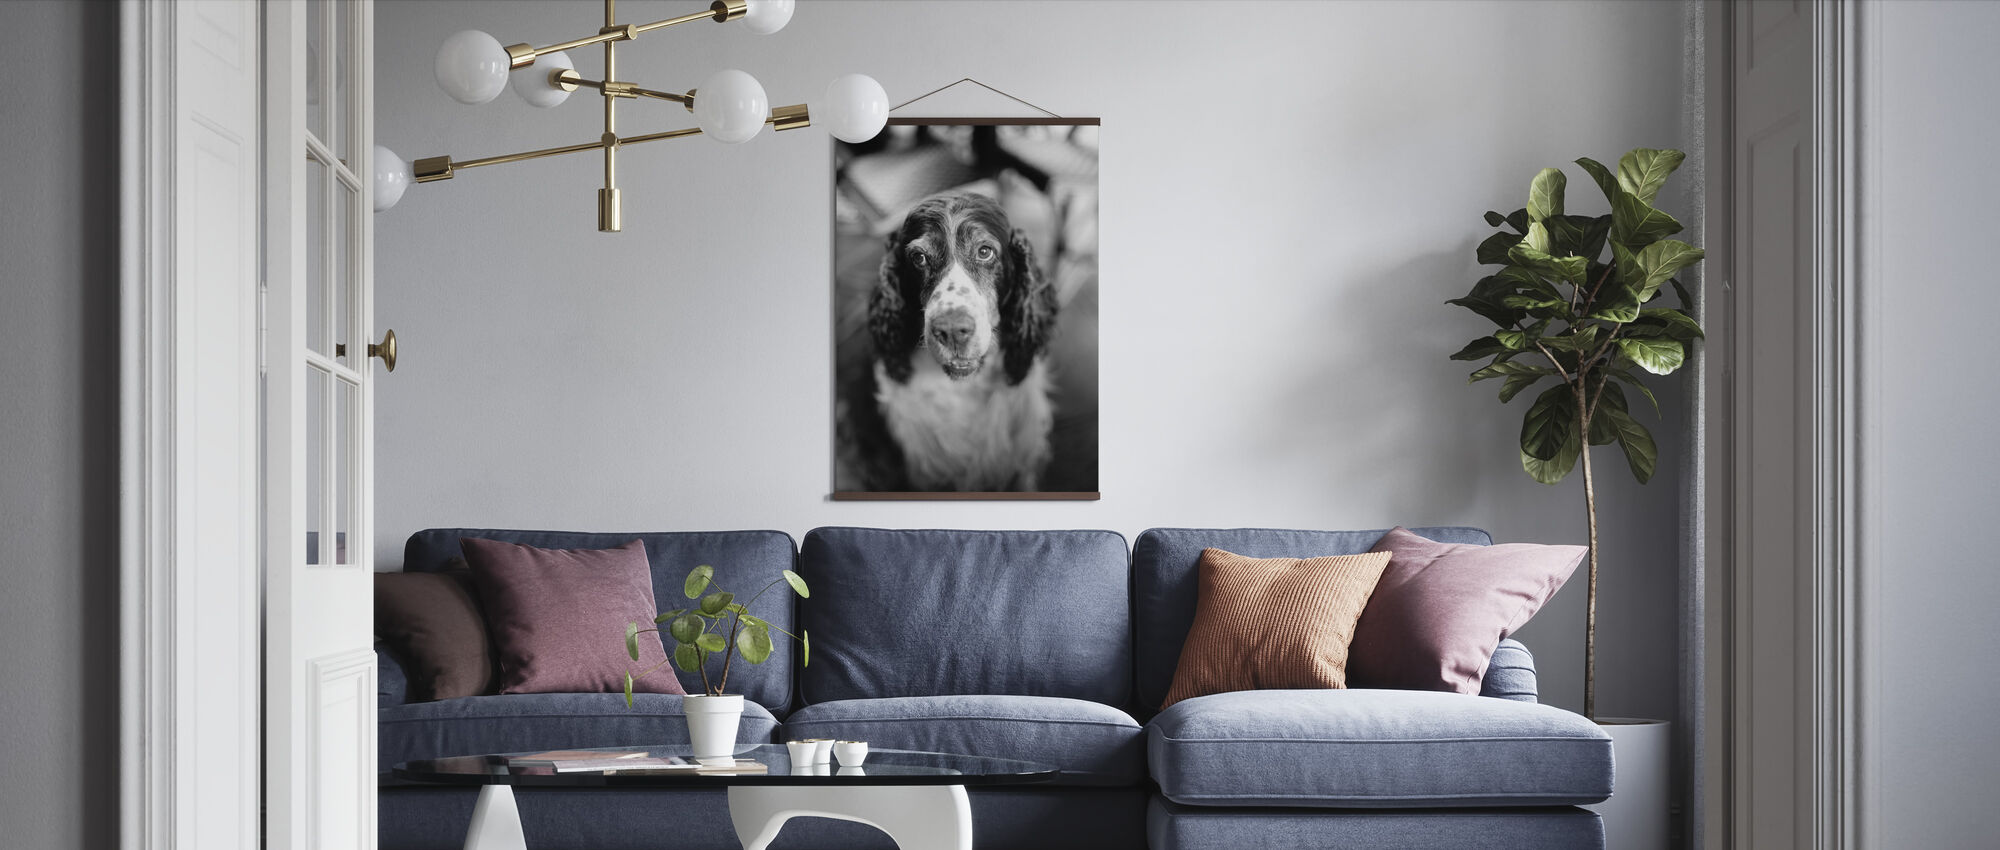 Loyal Friend - Poster - Living Room